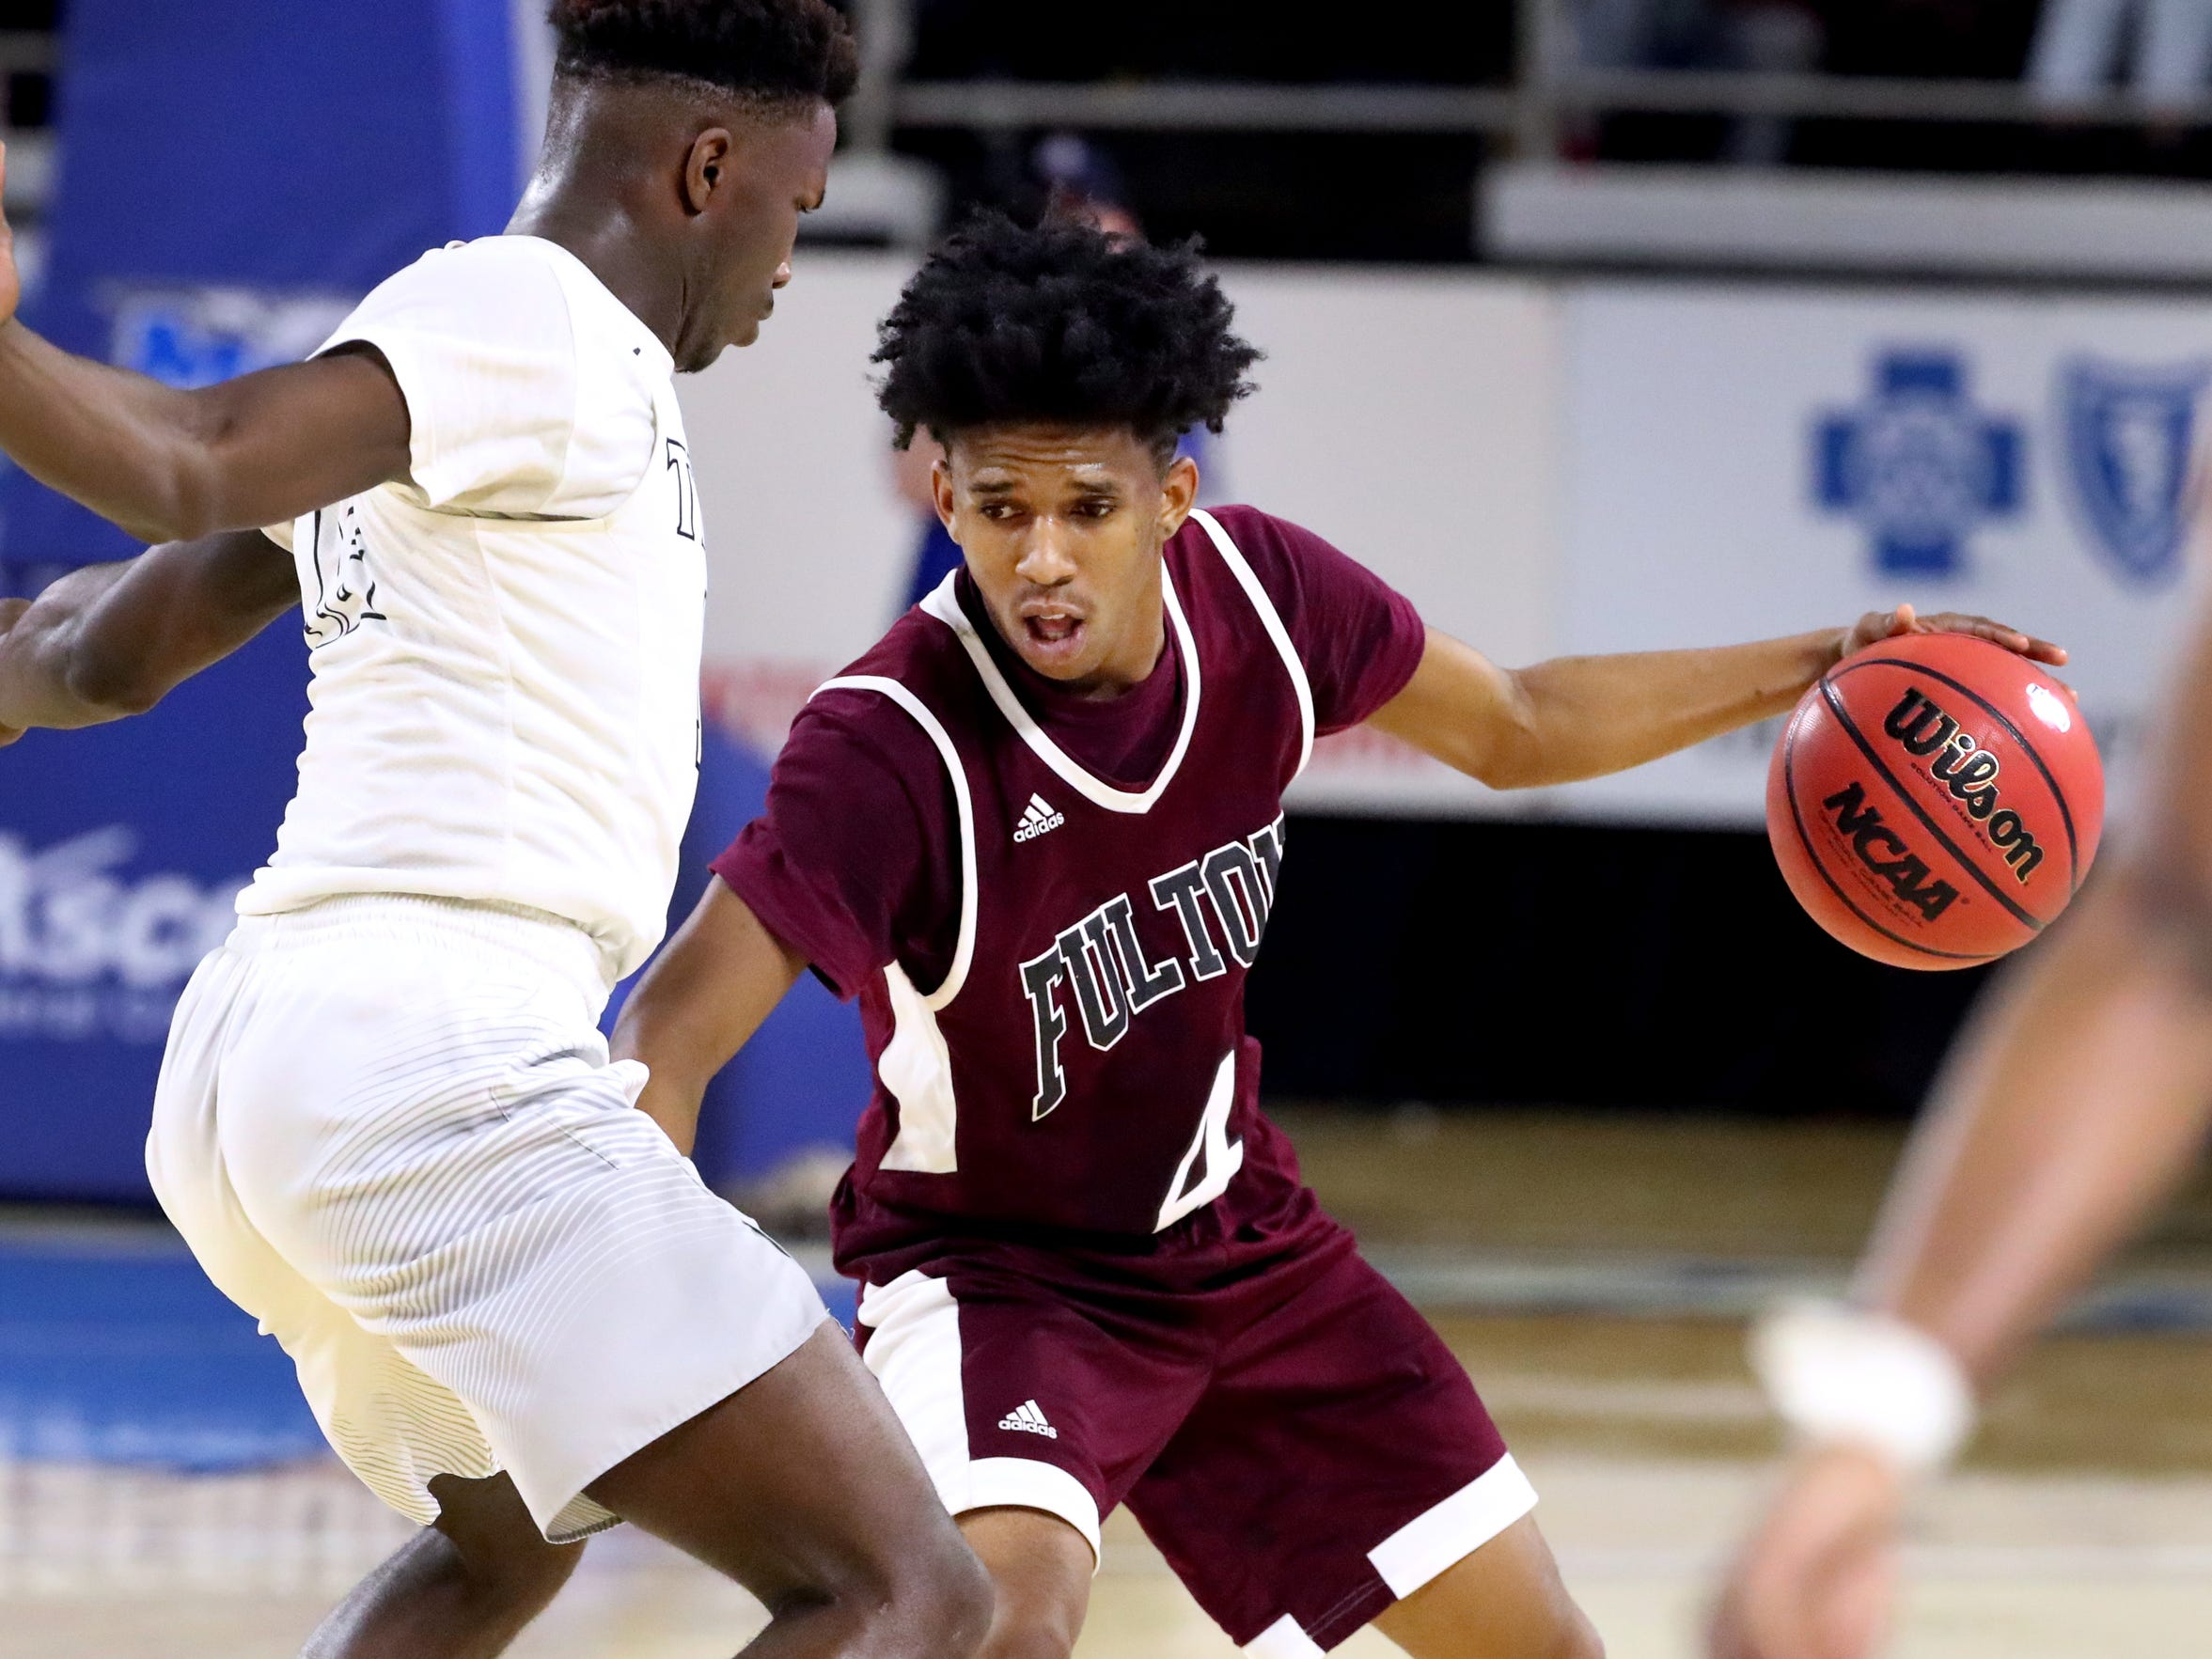 Fulton's Edward Lacy (4) brings the ball up court as Mitchell's Phabian Dale (12) guards him during the quarterfinal round of the TSSAA Class AA Boys State Tournament, on Wednesday, March 13, 2019, at Murphy Center in Murfreesboro, Tenn.